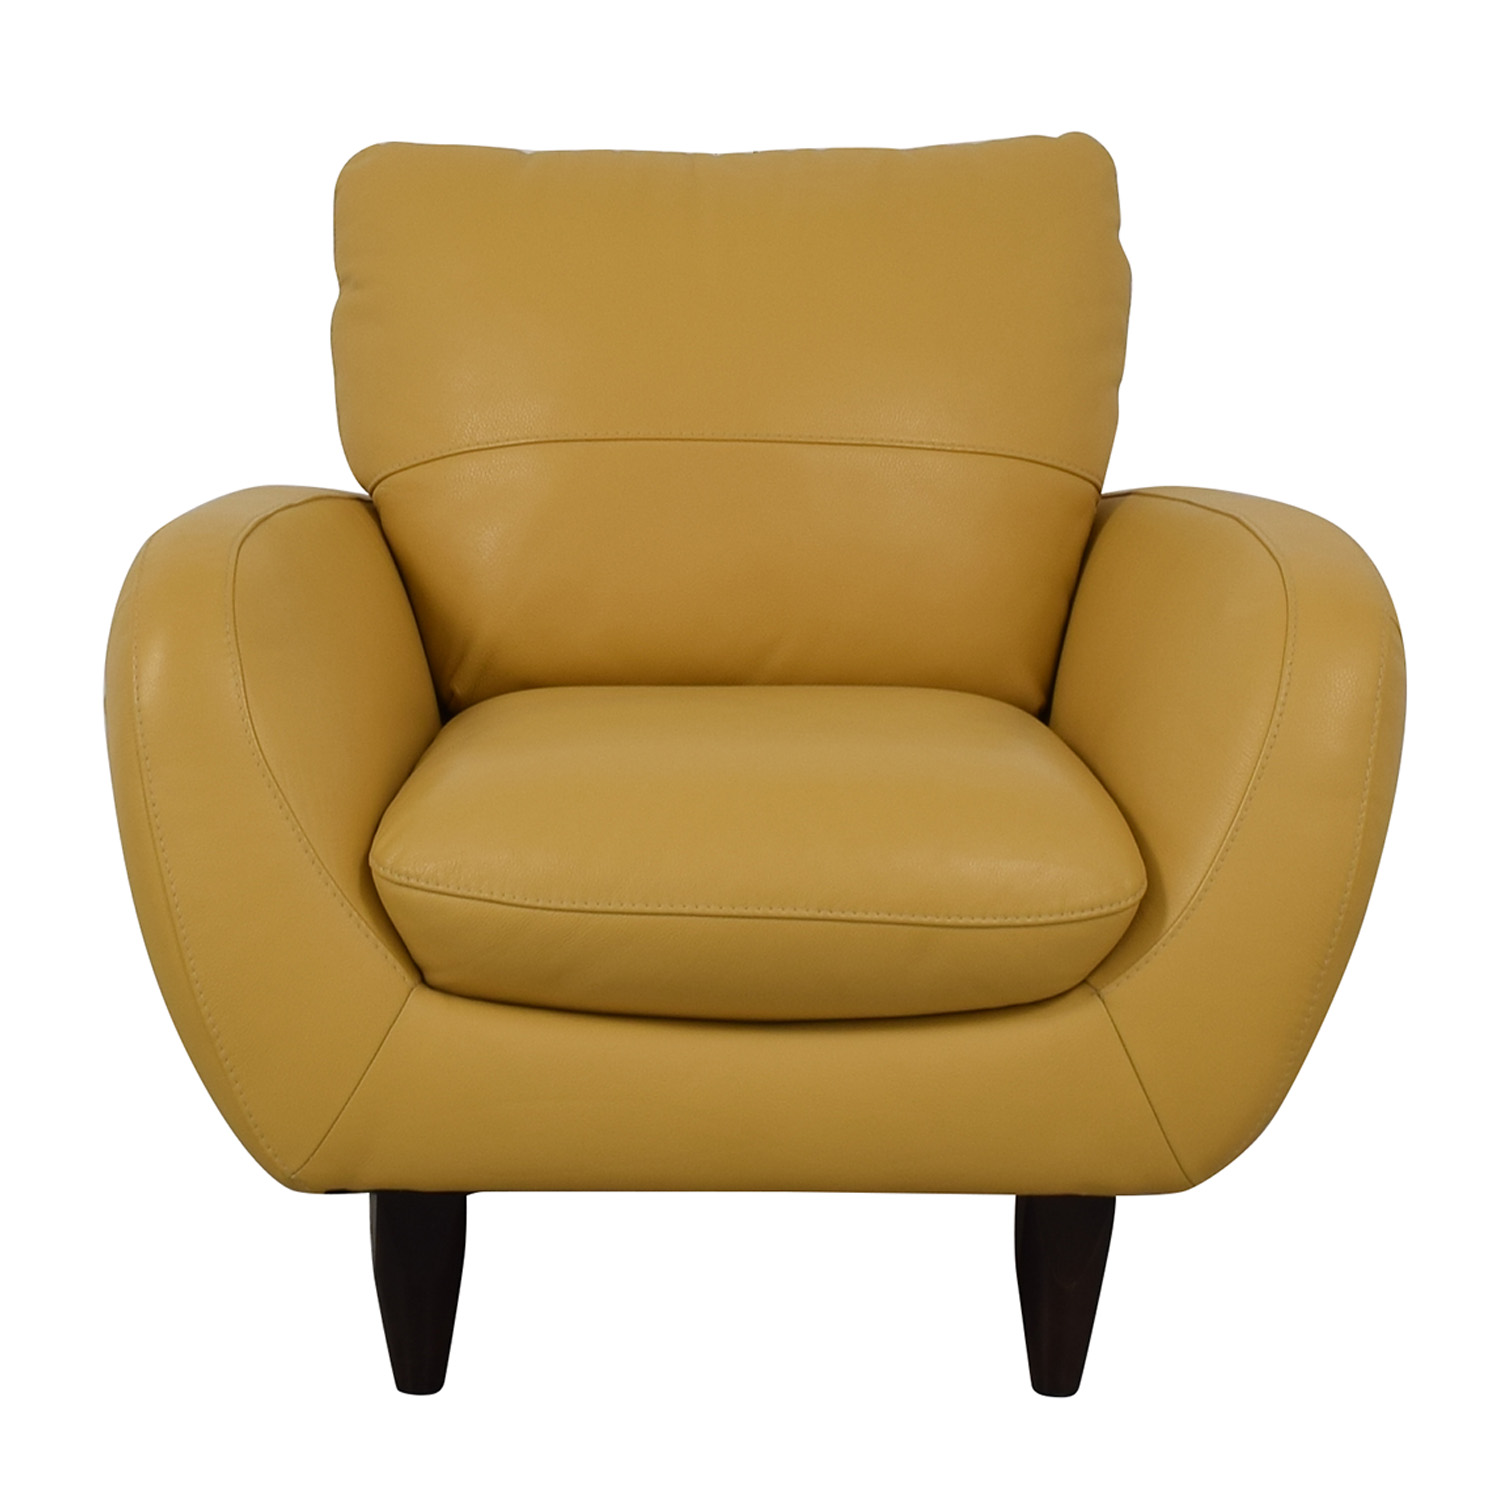 Macy's Macy's Italsofa Aquila Accent Chair for sale